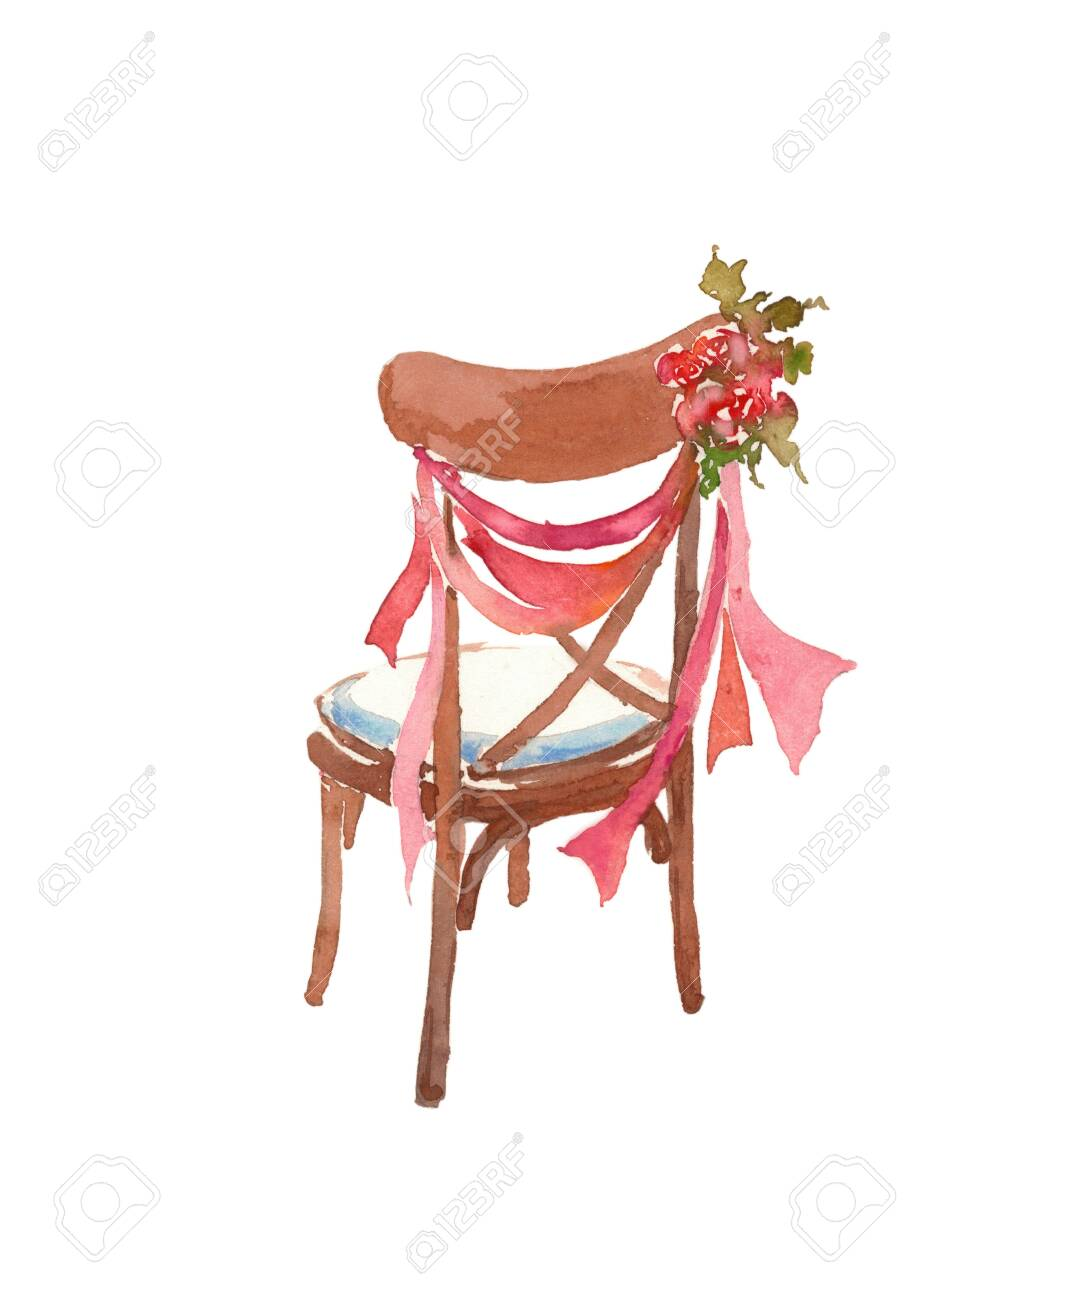 Picture of: Wooden Chair Decorated With Roses Ribbons Wedding Decor Stock Photo Picture And Royalty Free Image Image 154758765